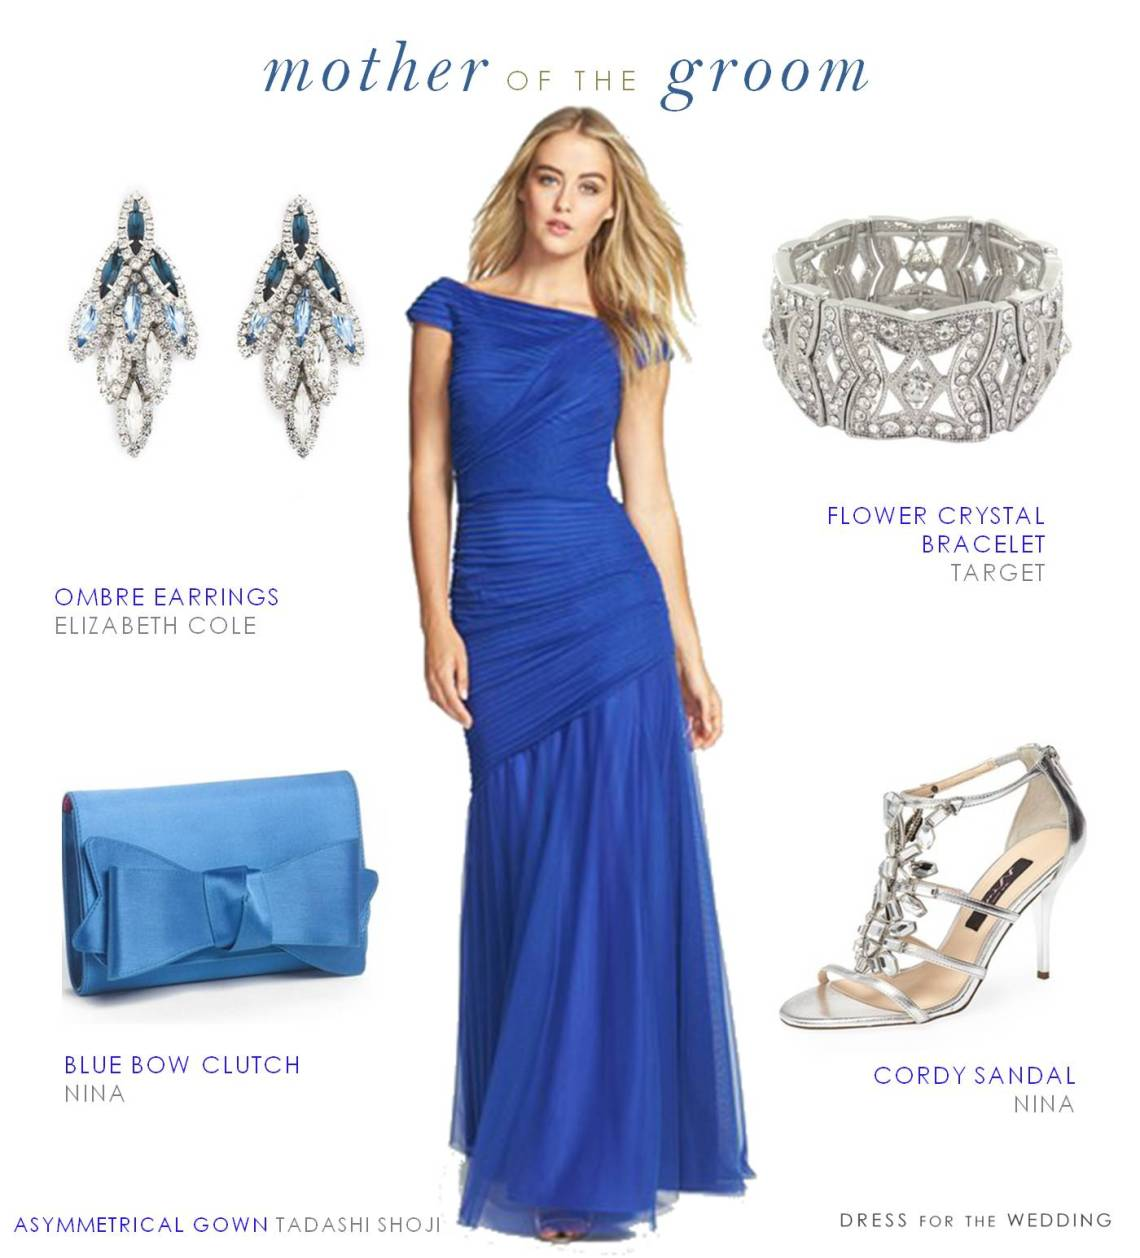 Image Result For Should Bridesmaid Wear Jewelry